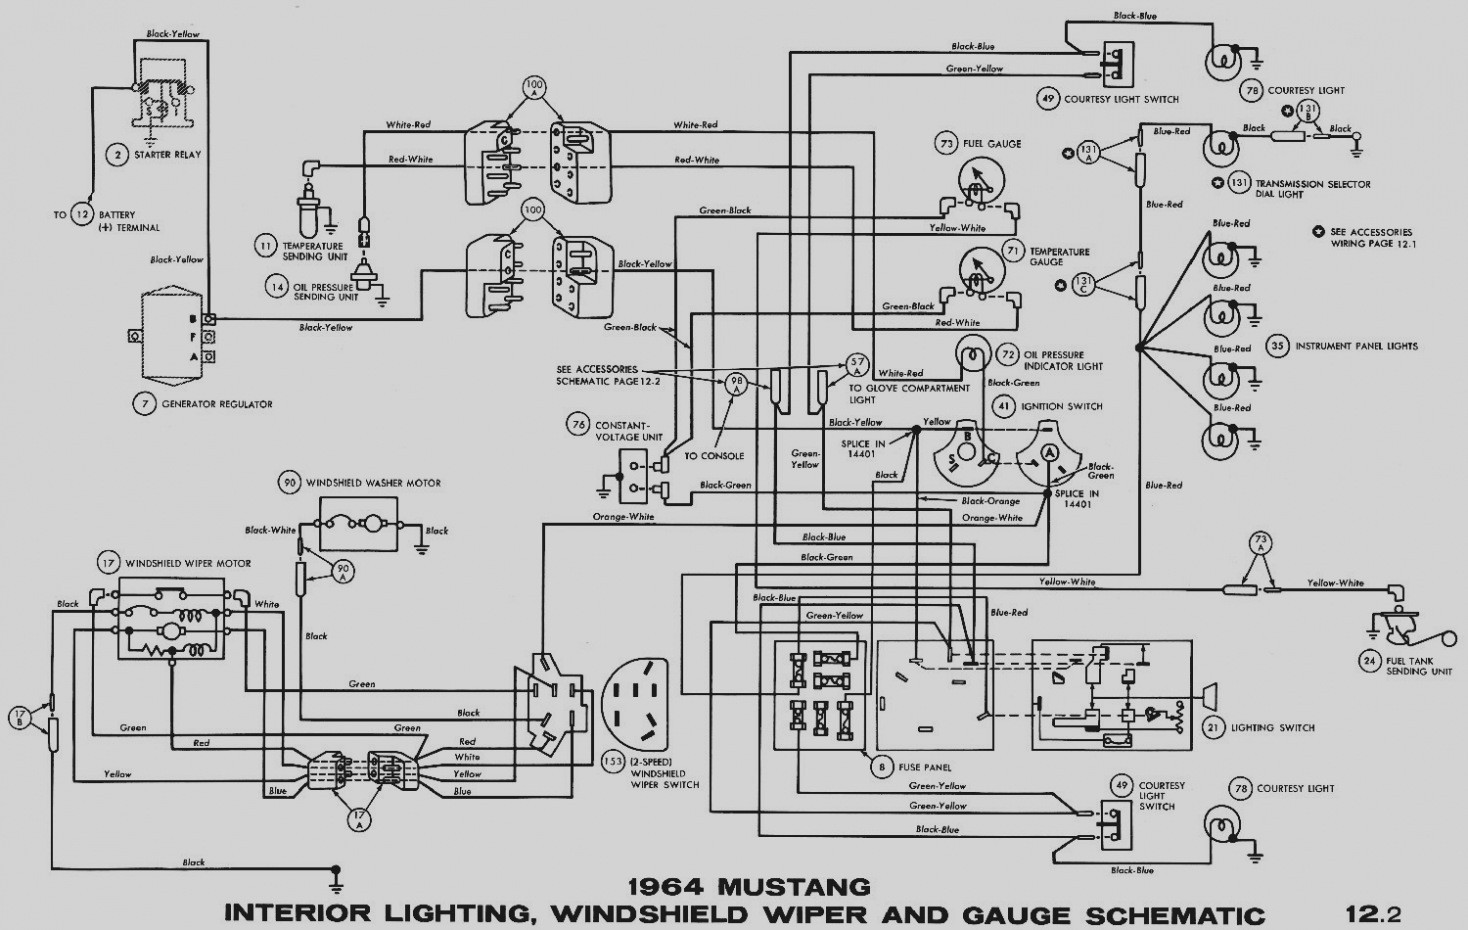 Starting System Wiring Diagrams For 1990 Ford Mustang Just Wirings 2012 F250 Windshield Wiper Fuse Diagram Data Rh 45 77 211 17 1991